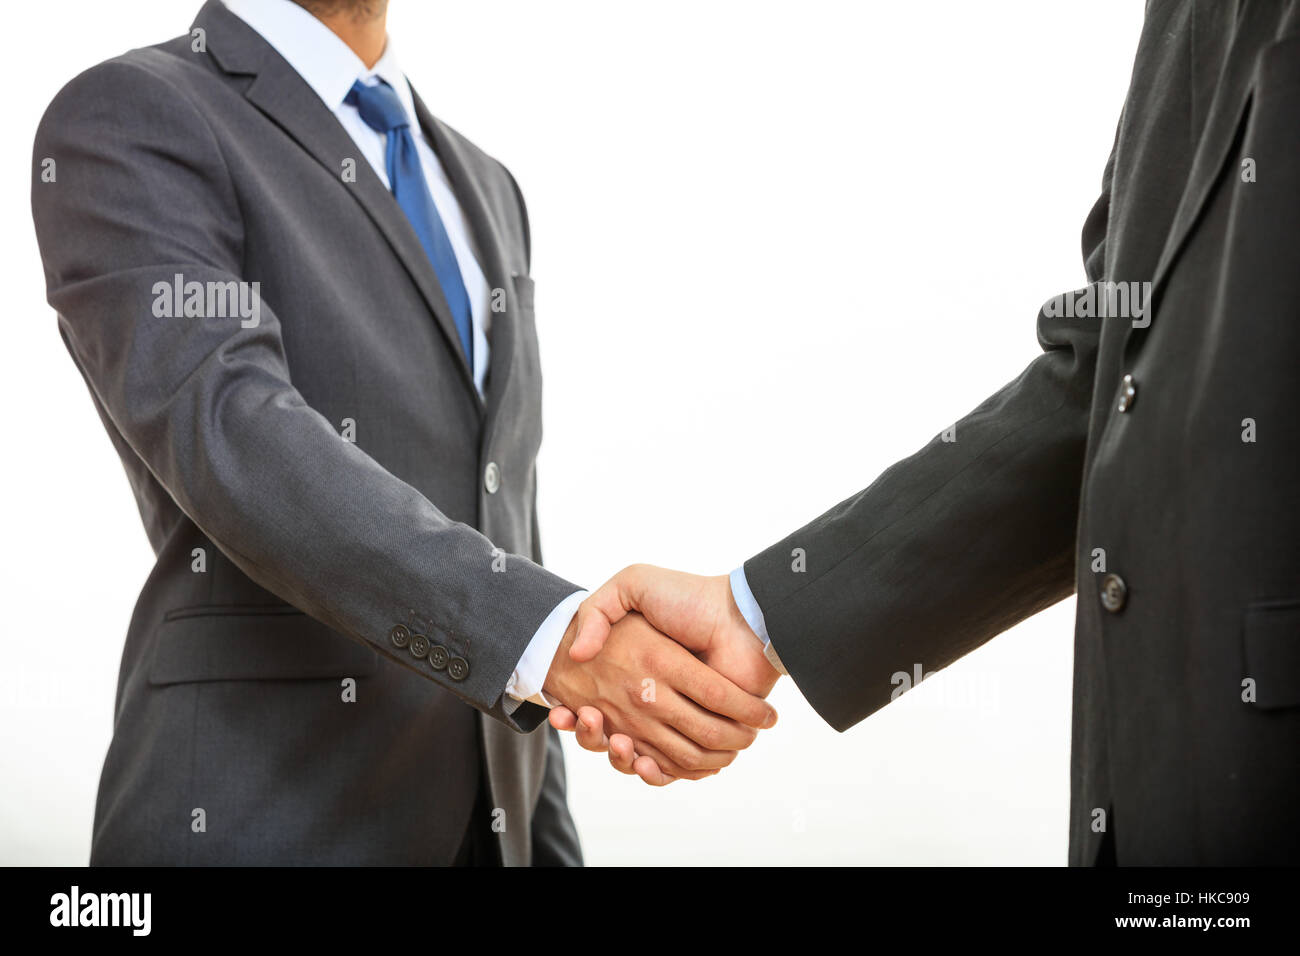 Business people greeting each other stock photo royalty free image business people greeting each other m4hsunfo